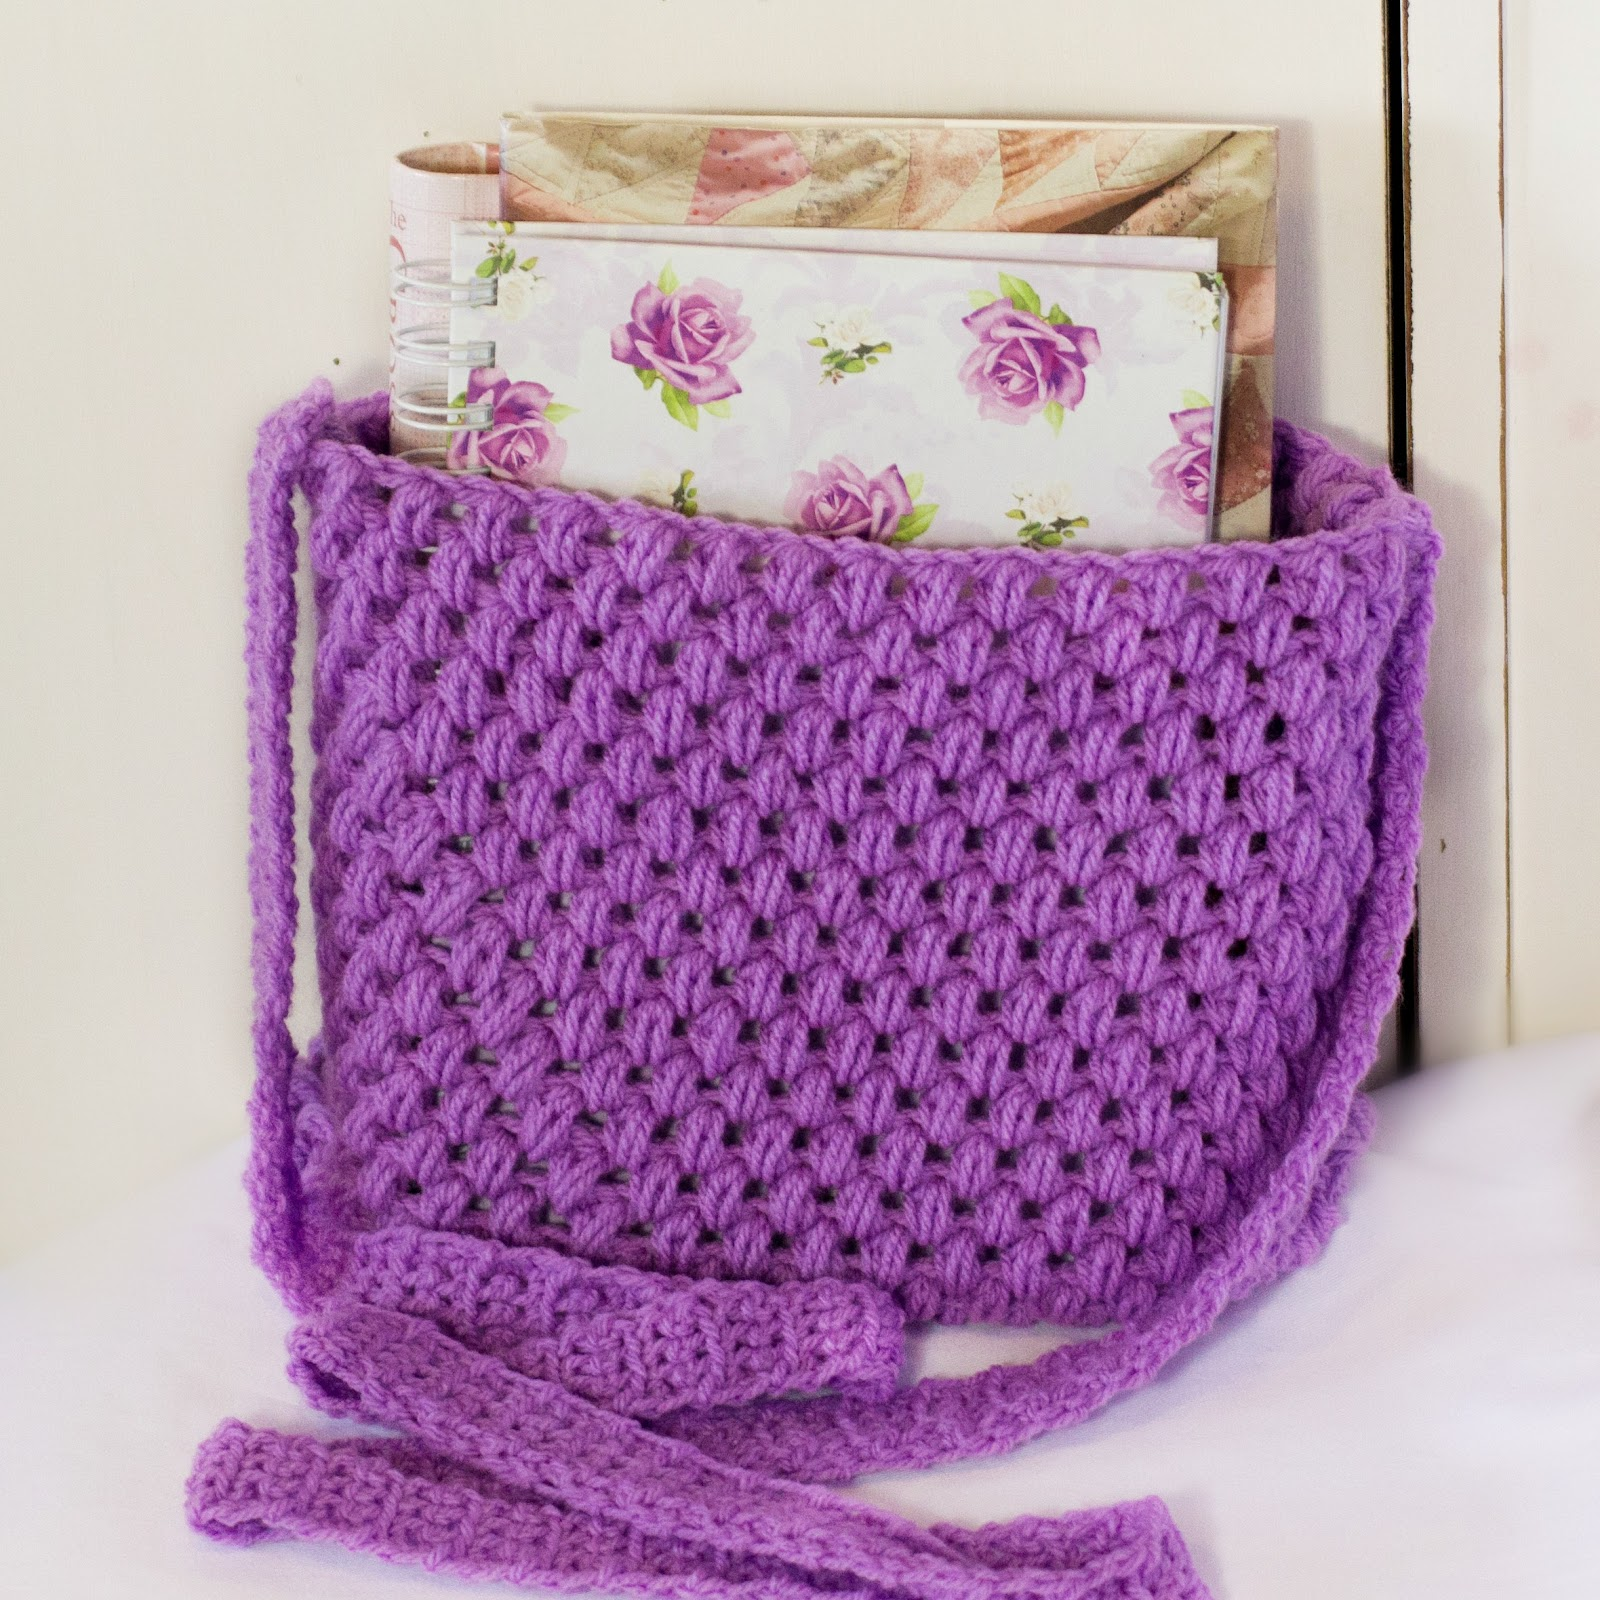 Crochet Tote Bag Free Pattern : ... Craft, Crochet, Create: Out and About ~ Easy Tote Bag Crochet Pattern